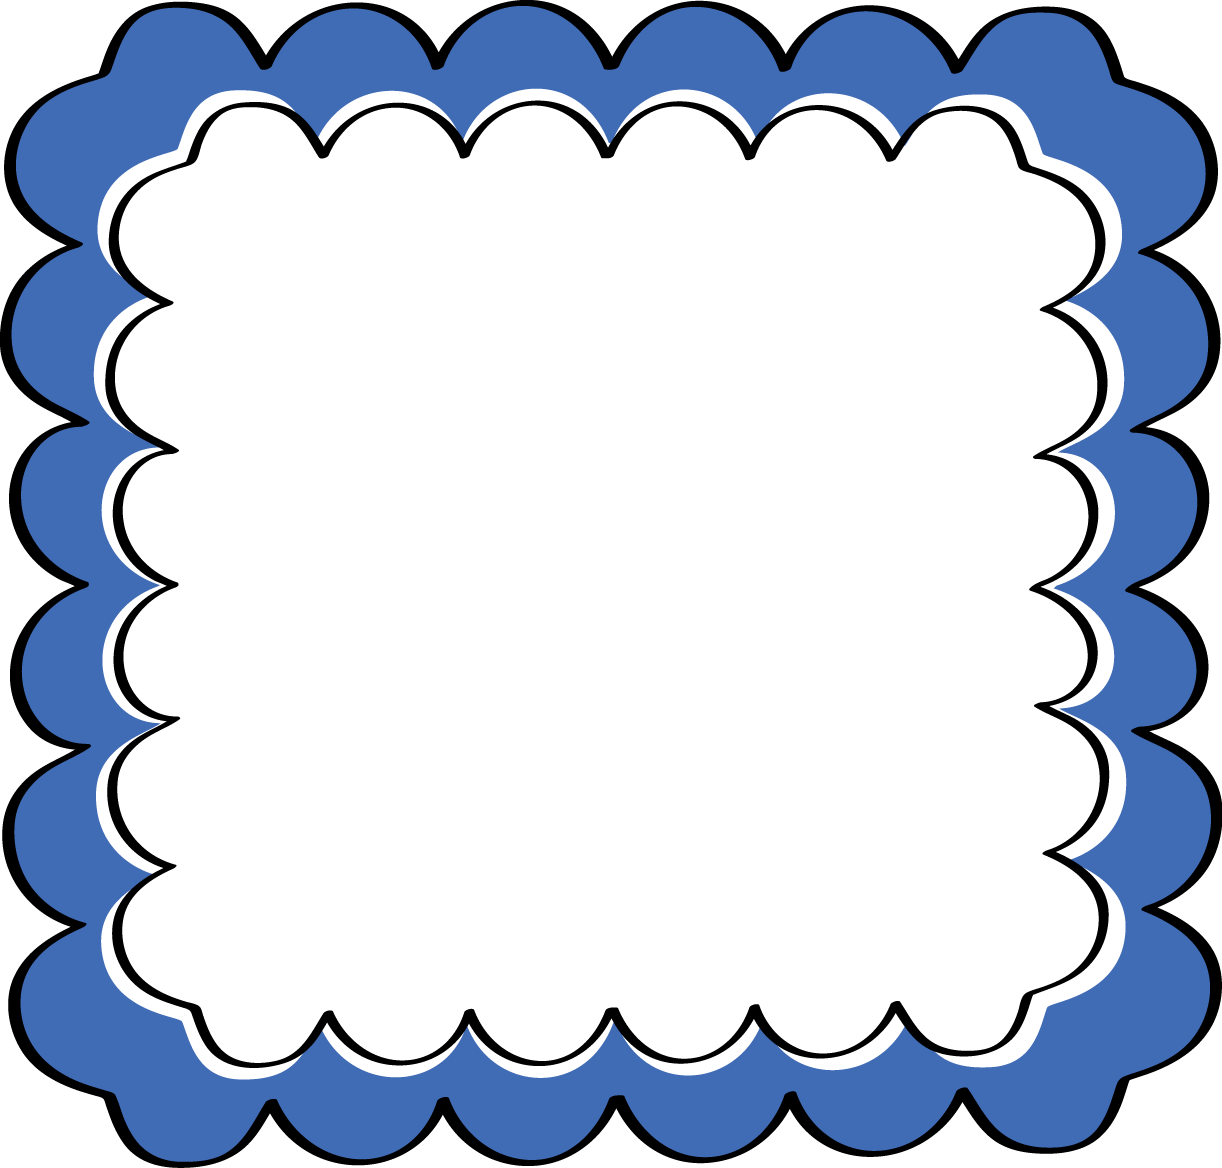 Squiggly clipart fancy square frame.